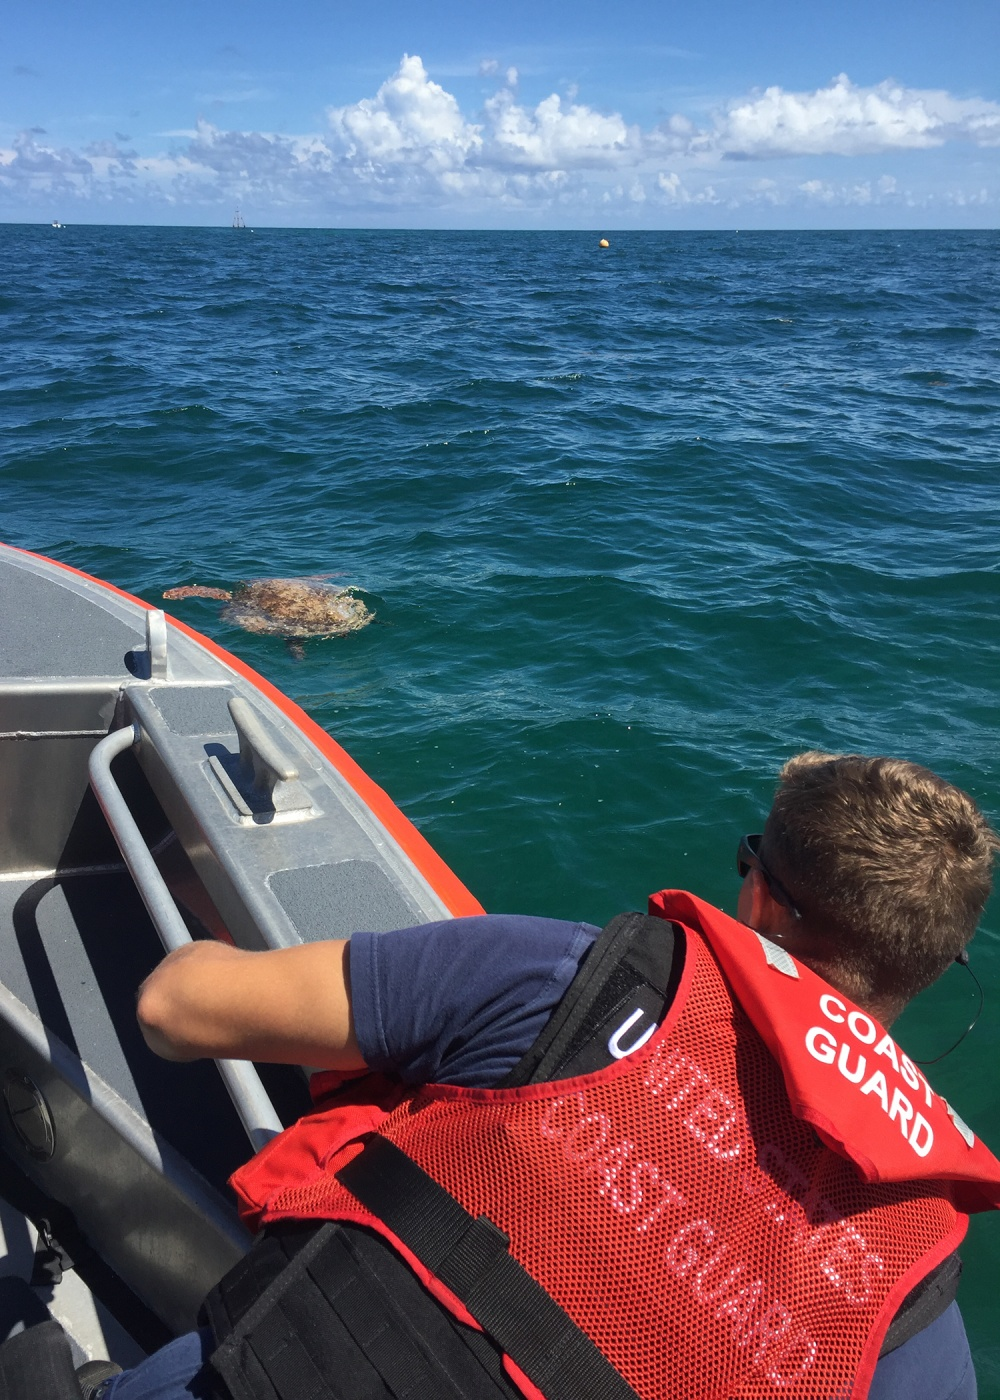 A Coast Guard Station Islamorada 24-foot Special Purpose Craft—Shallow Water boatcrew approach an injured sea turtle Tuesday, Sept. 18, 2018 approximately 2 miles southeast of Plantation Key. The station crew recovered the injured sea turtle from water and took it to the station where members of the Turtle Hospital took the turtle for further care. U.S. Coast Guard photo by Petty Officer 2nd Class Michael Lees